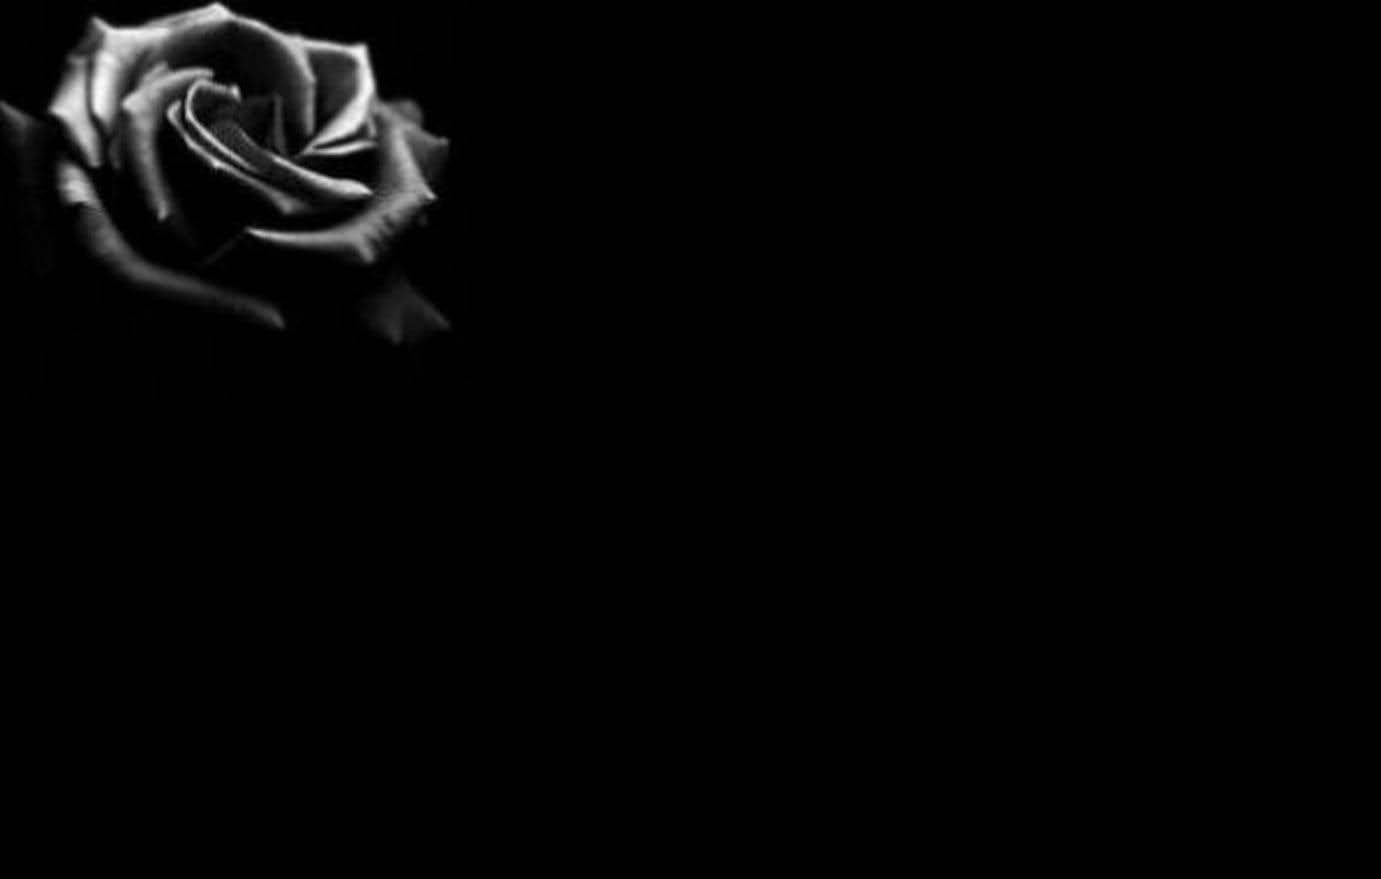 White rose flower black background free stock photos download